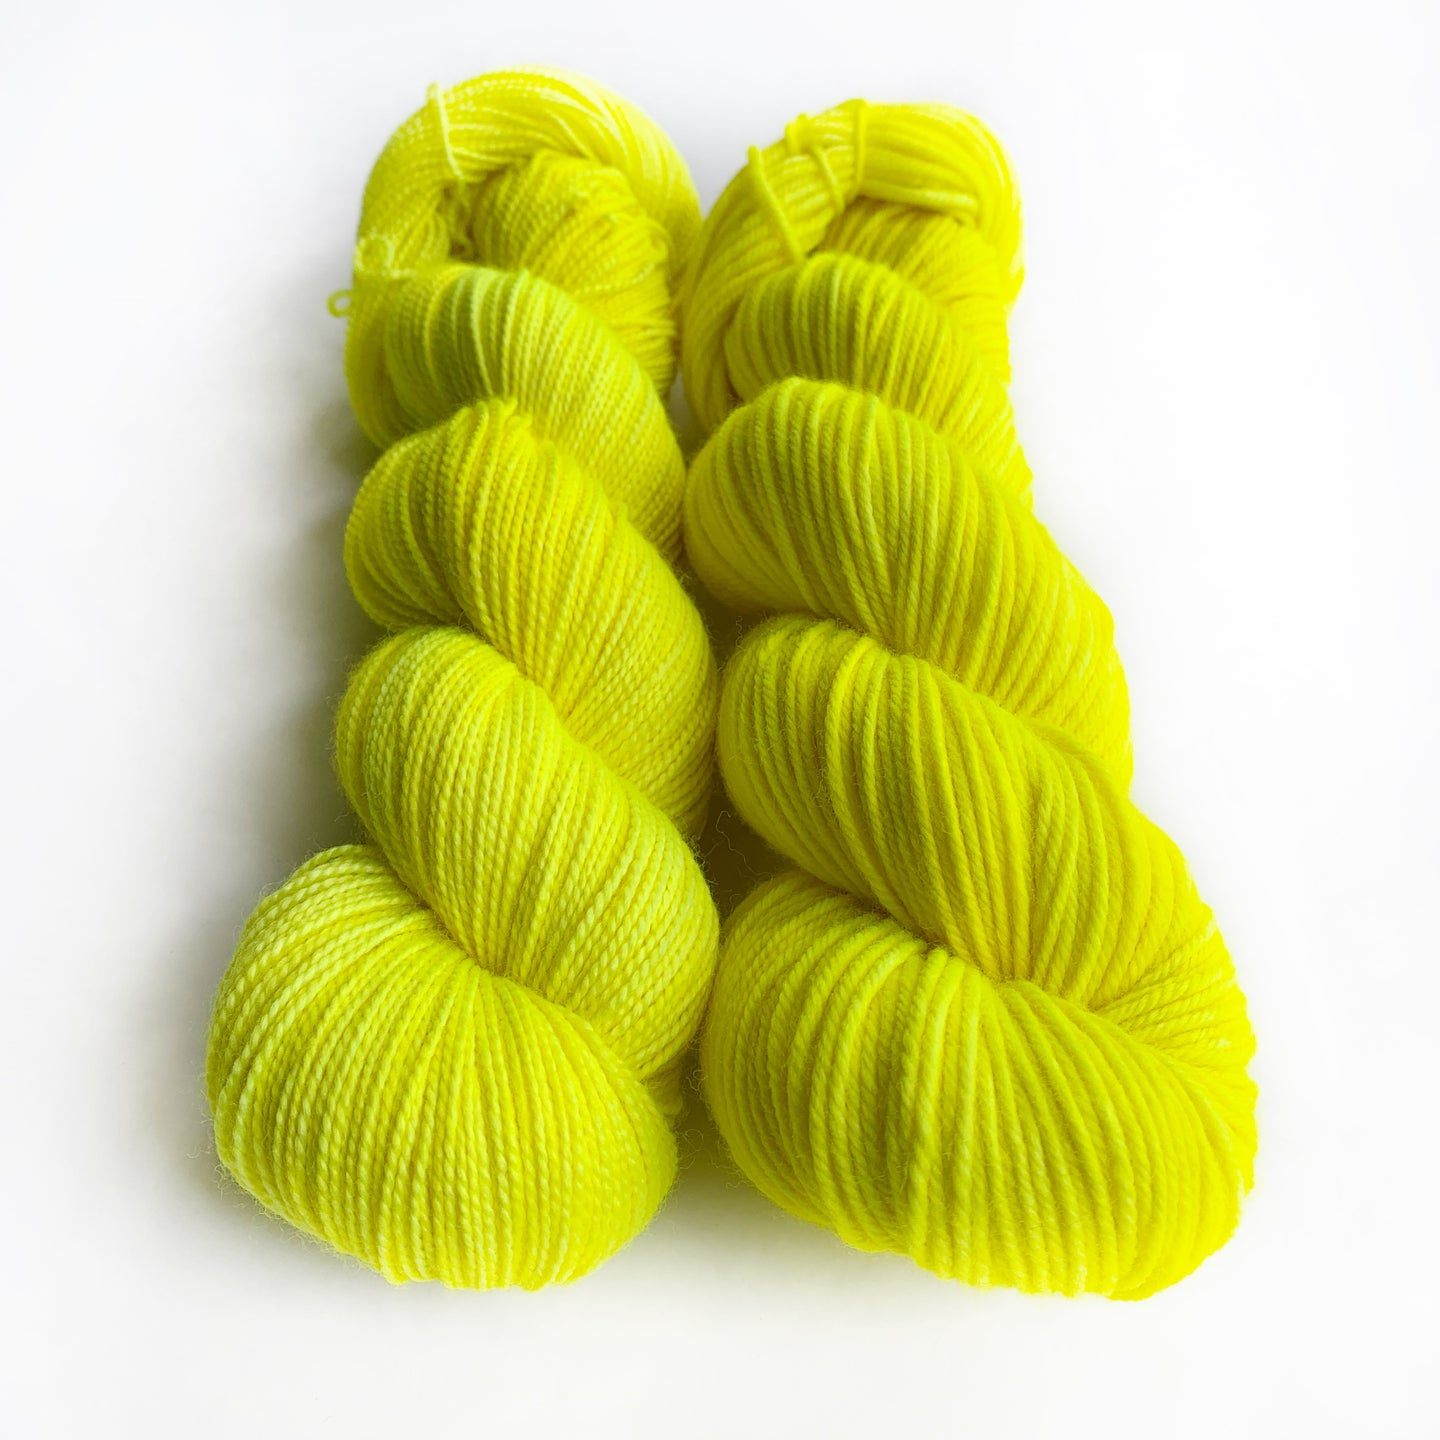 LEMONHEAD - Dyed to order